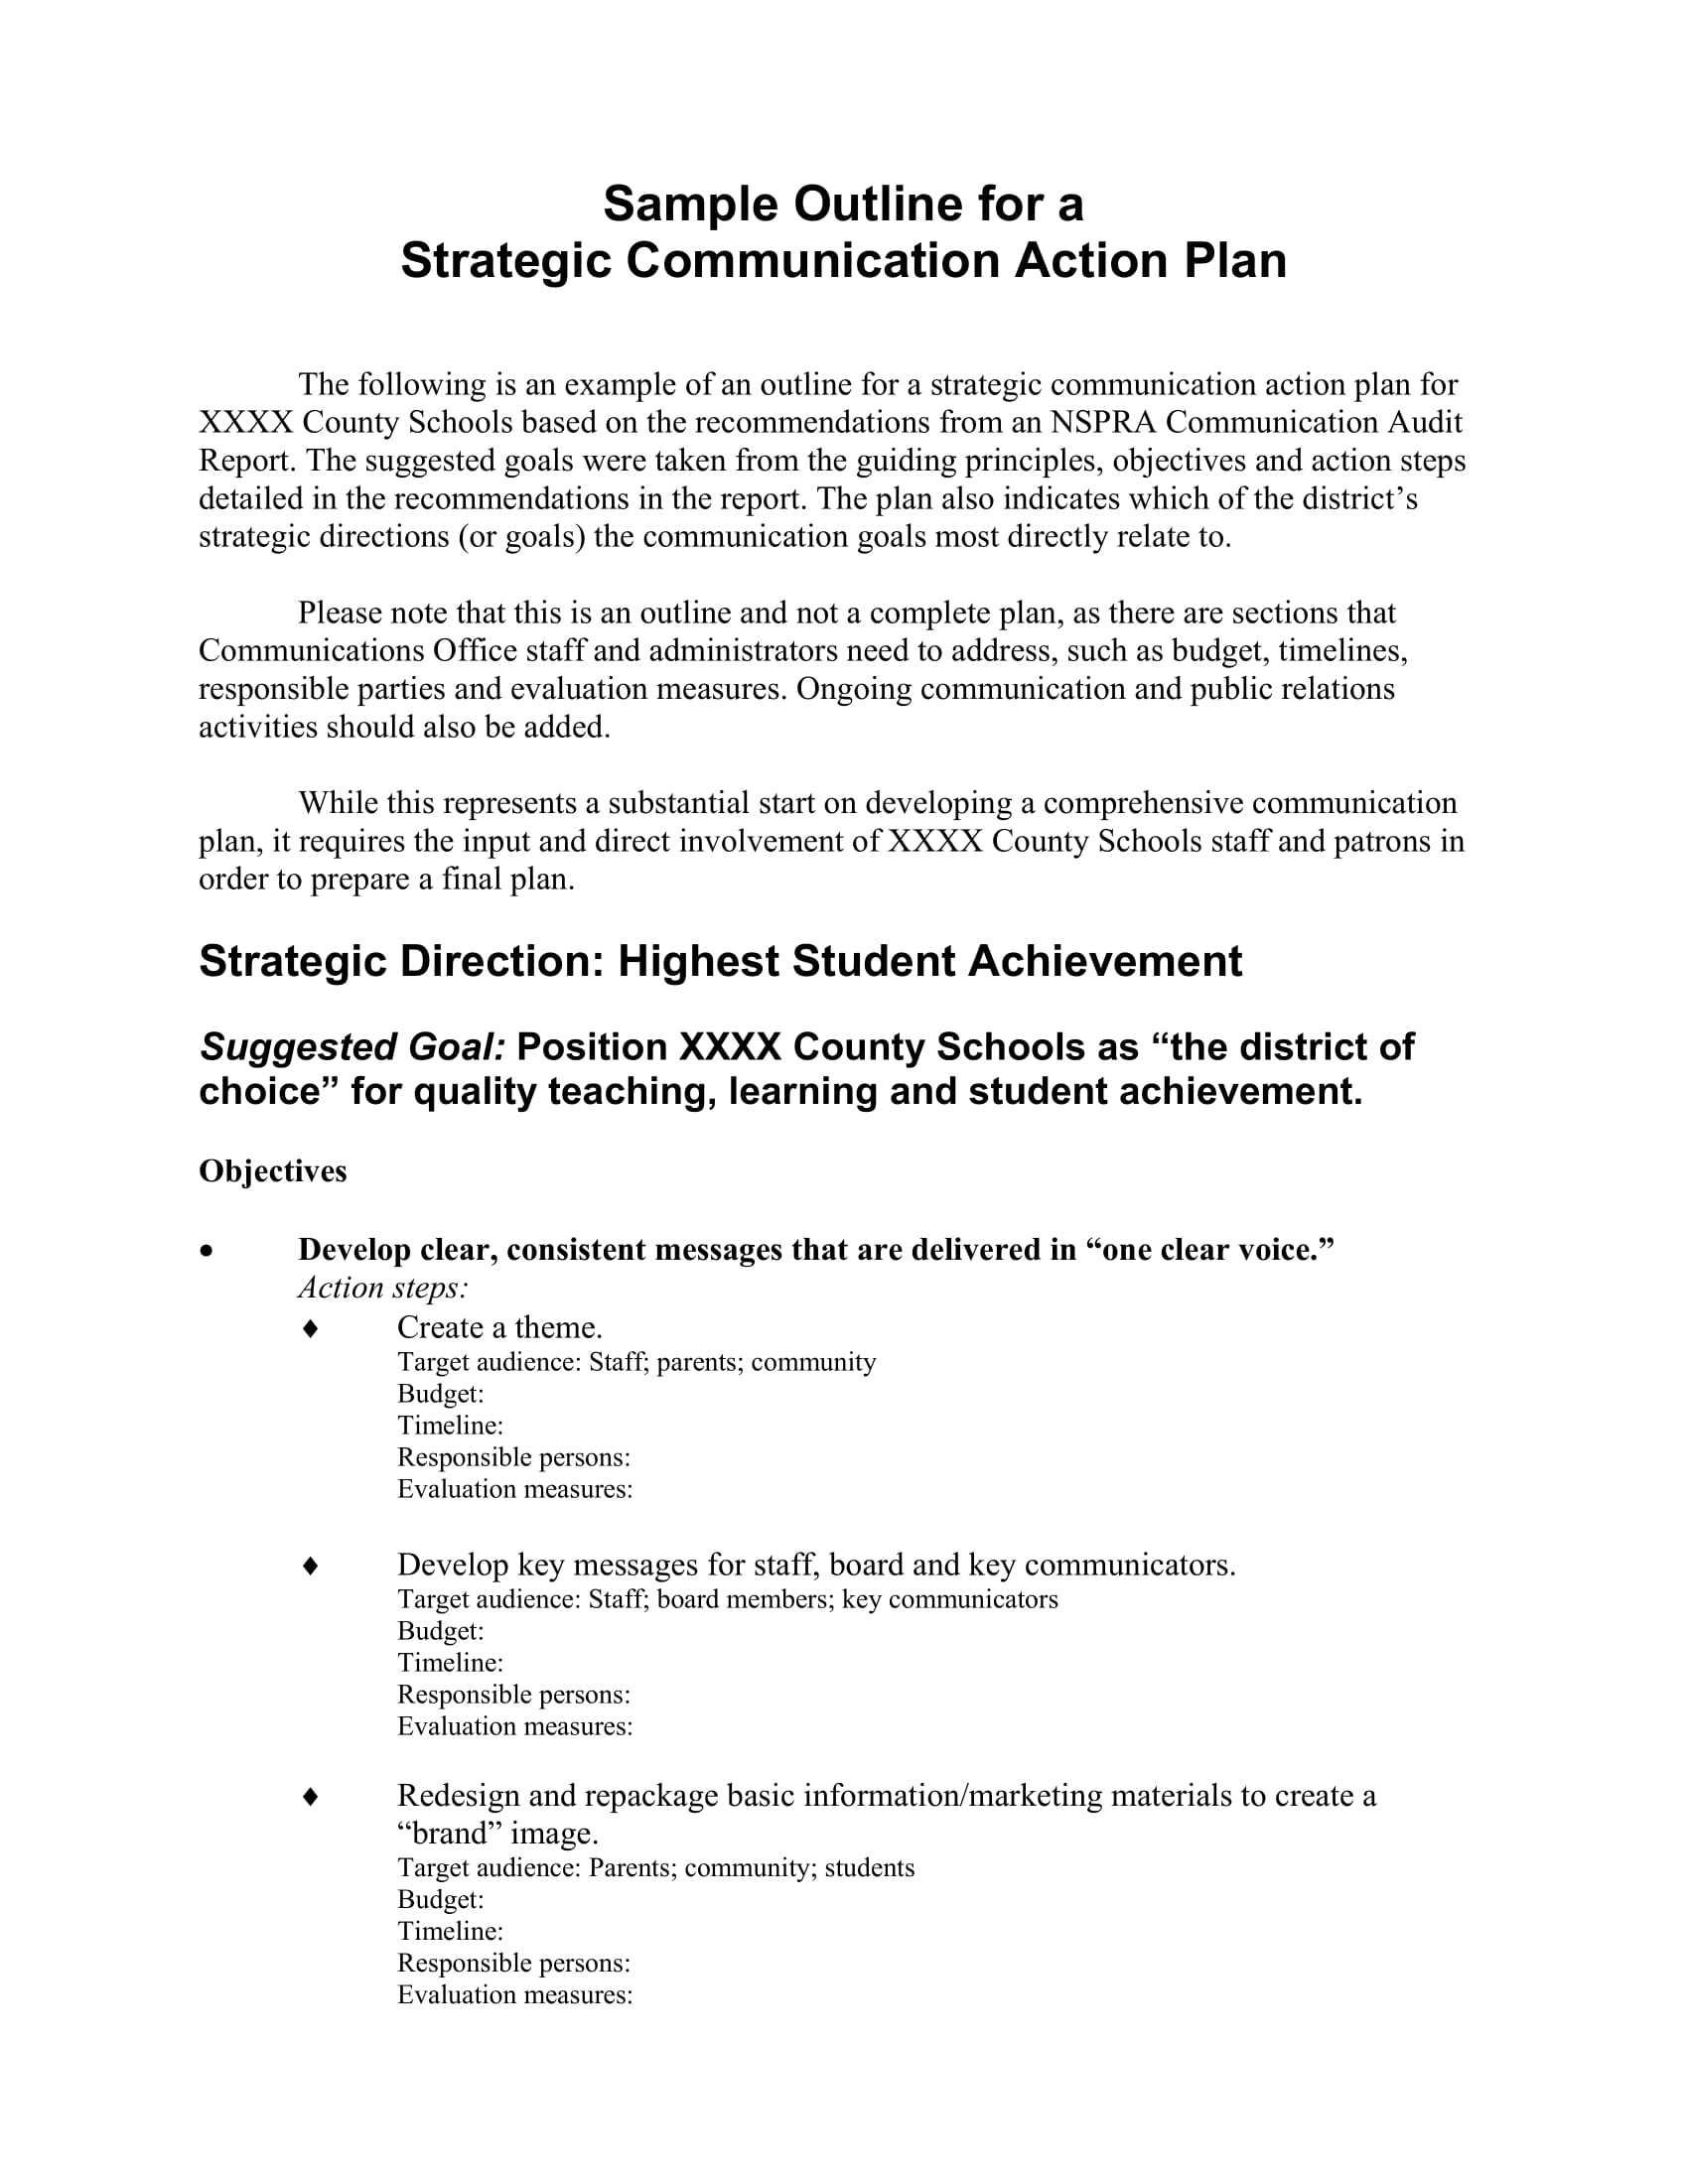 strategic communication action plan outline example 01